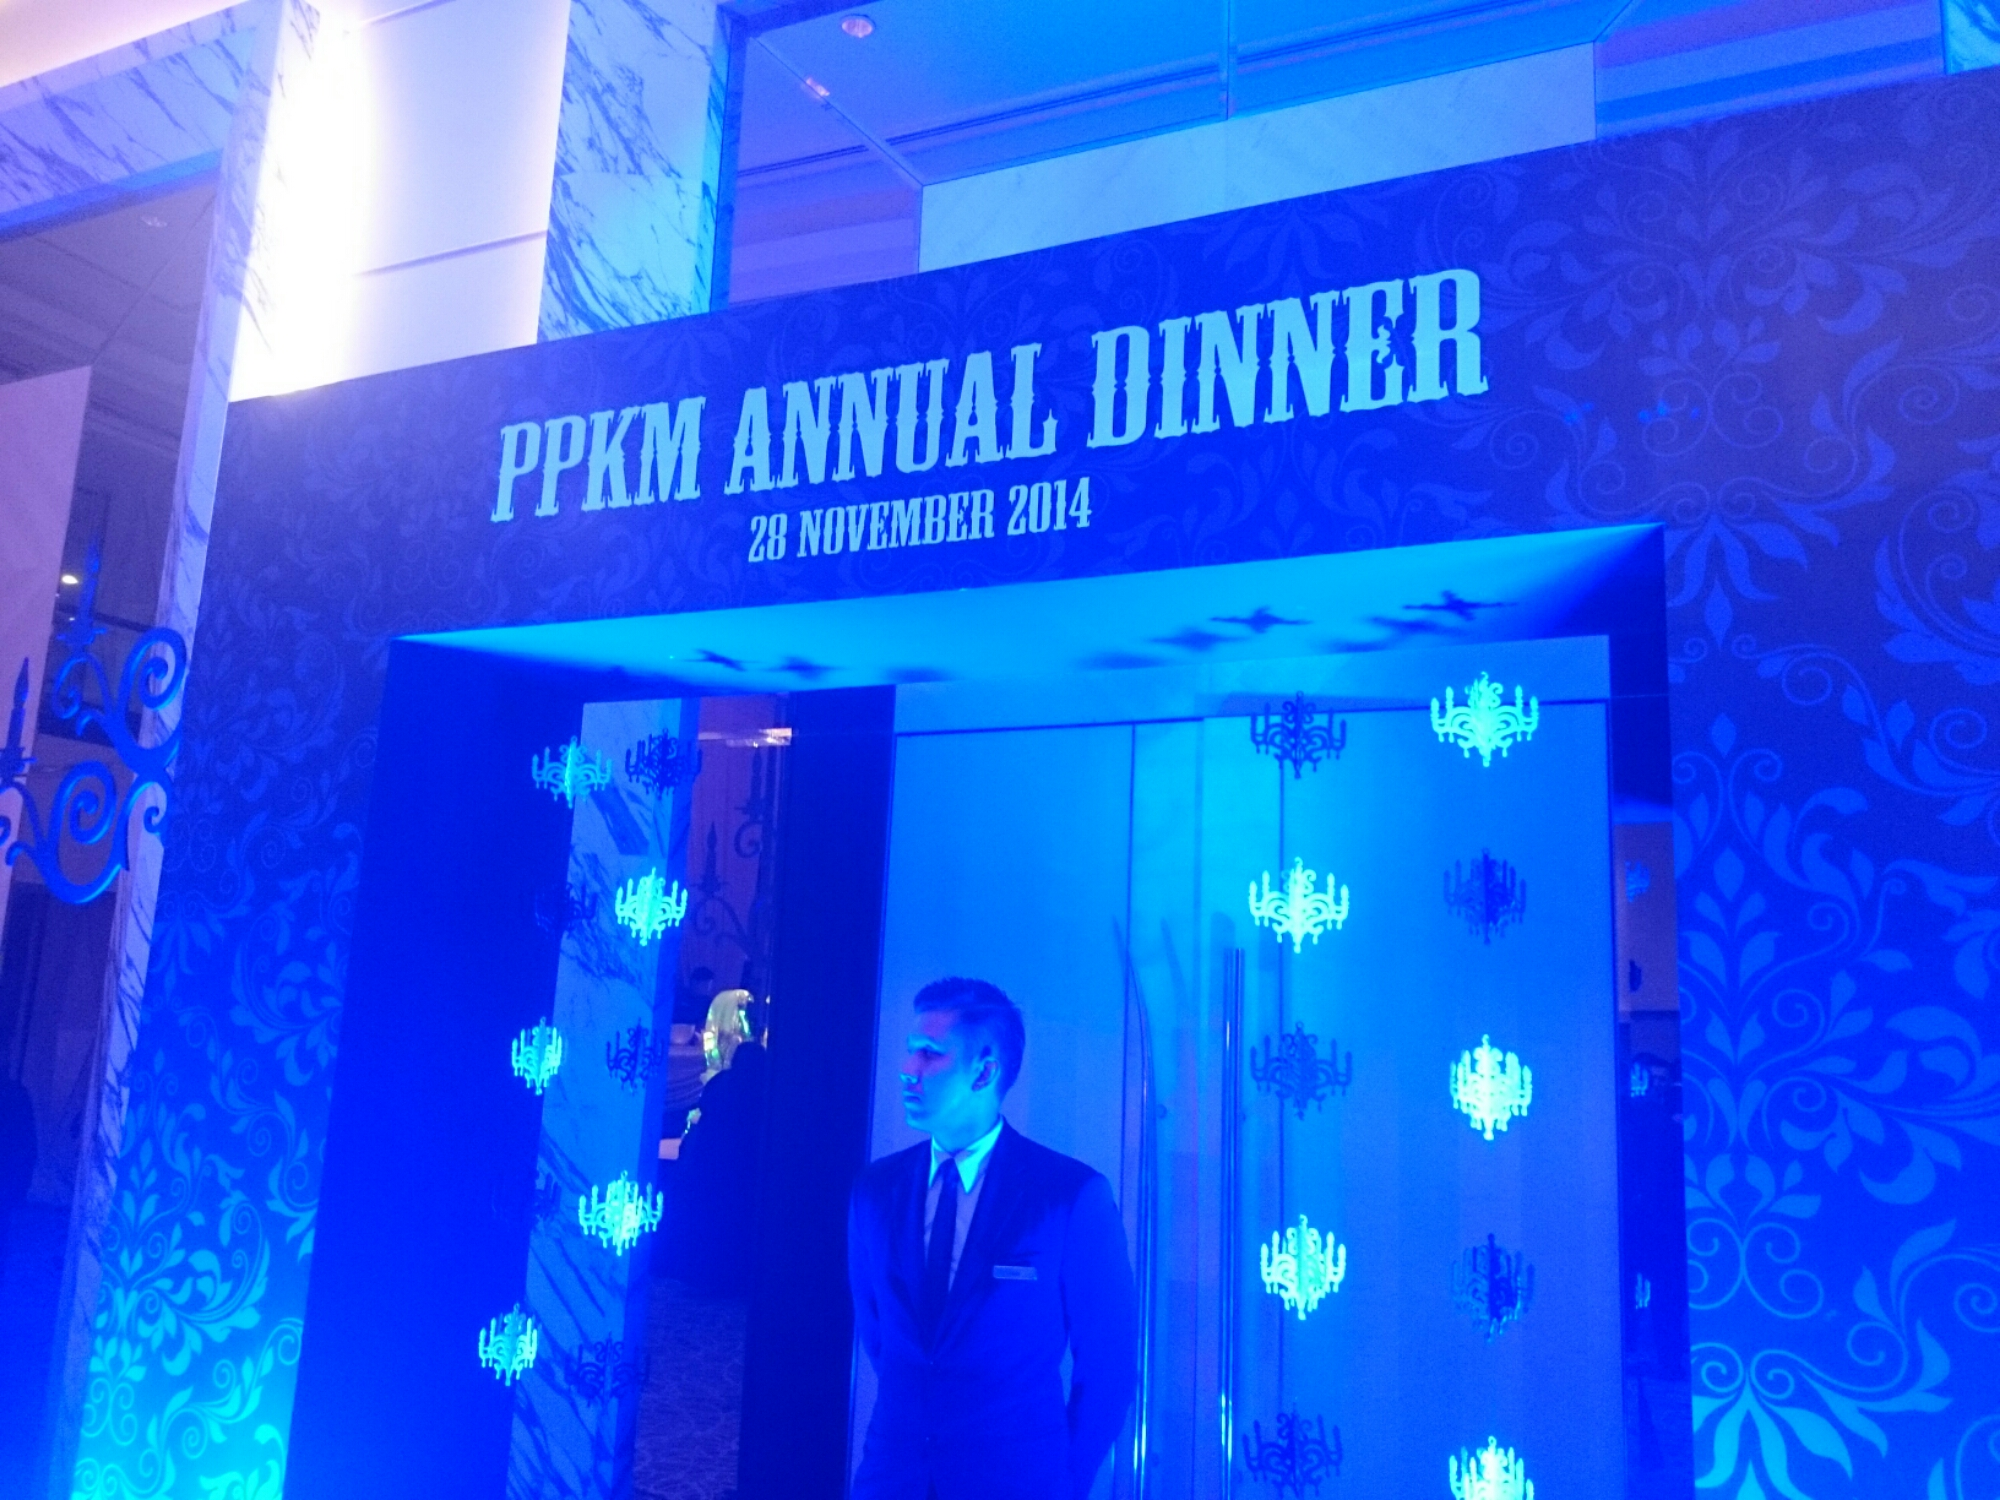 Happening Now PPKM Annual Dinner 2014